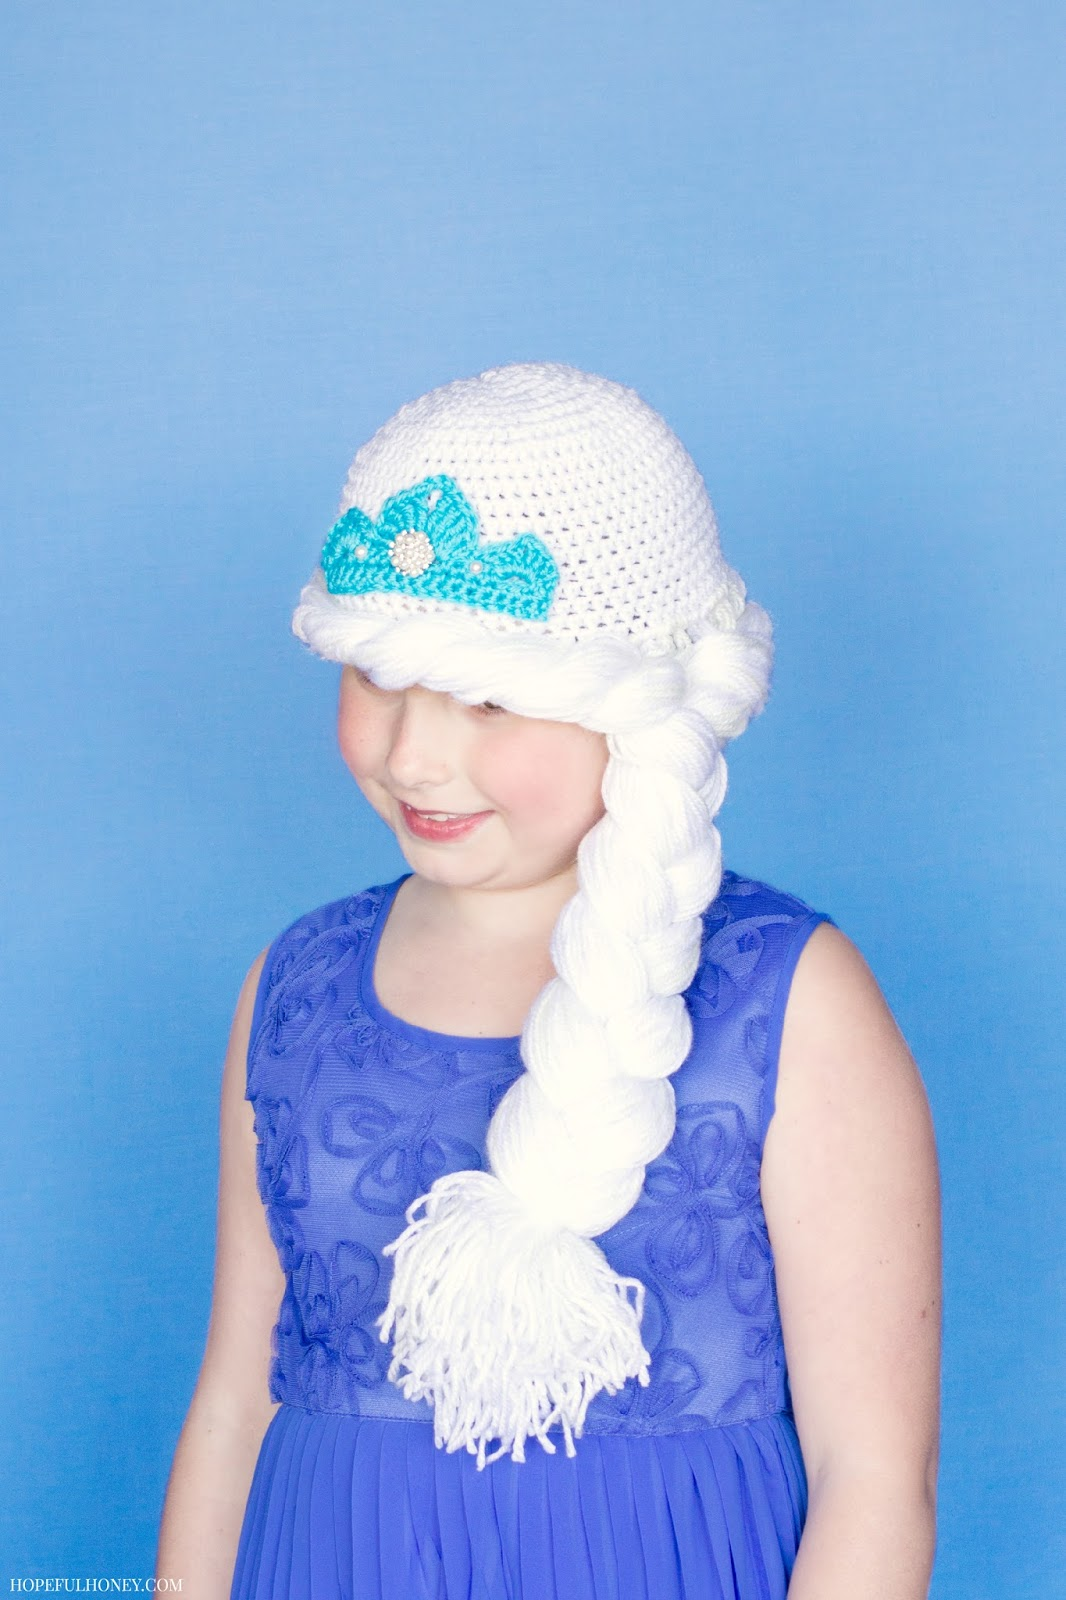 Free Crochet Pattern Frozen Elsa Hat : Hopeful Honey Craft, Crochet, Create: Frozen Princess ...